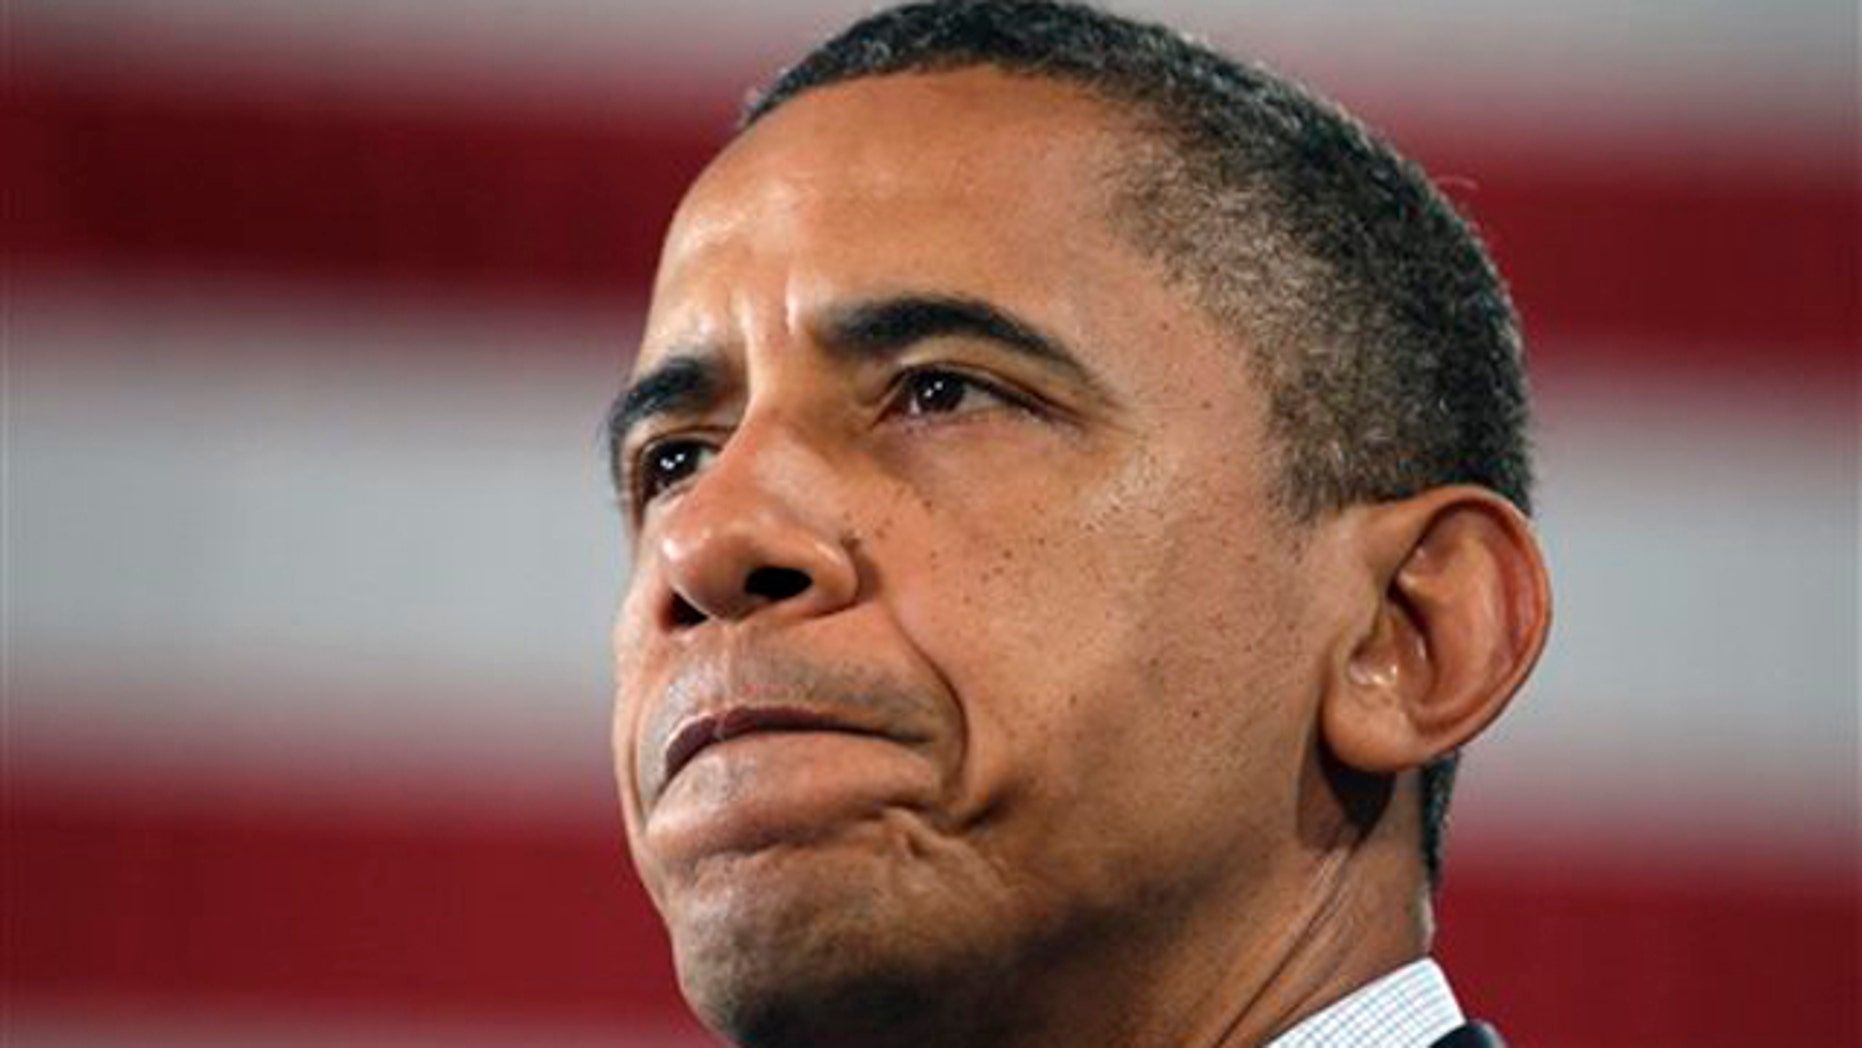 Tuesday: President Obama pauses as he speaks during a Rural Economic Forum in Peosta, Iowa.